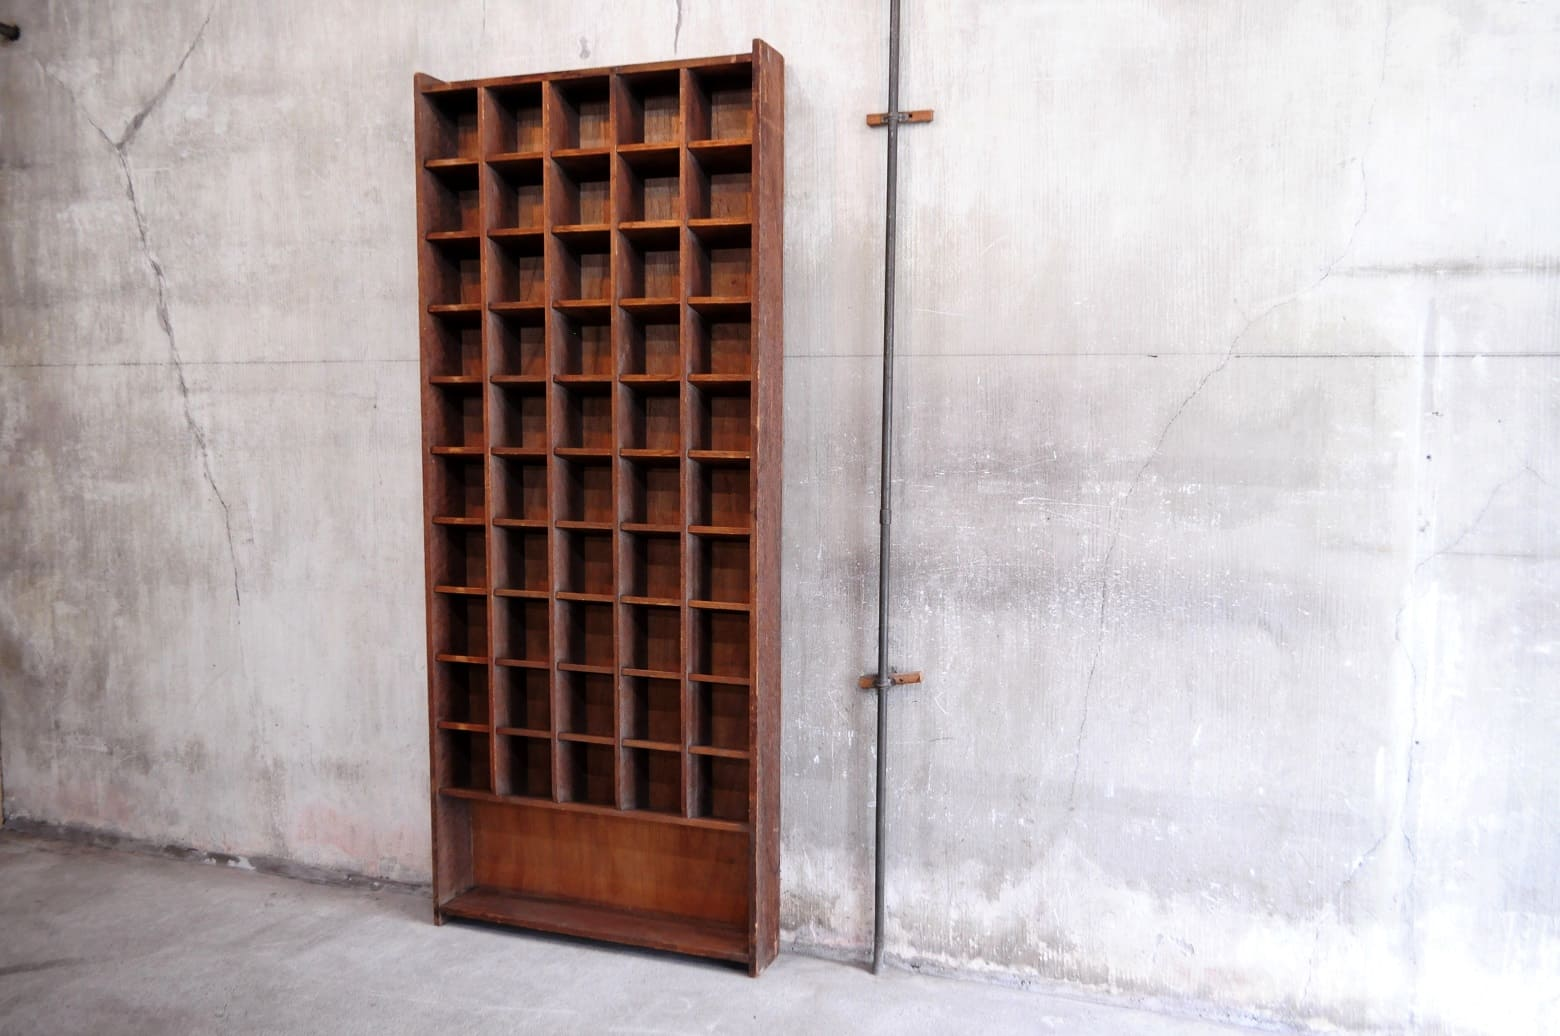 Antique Post Office Sorting Shelf/アンティーク 郵便局 仕分け棚